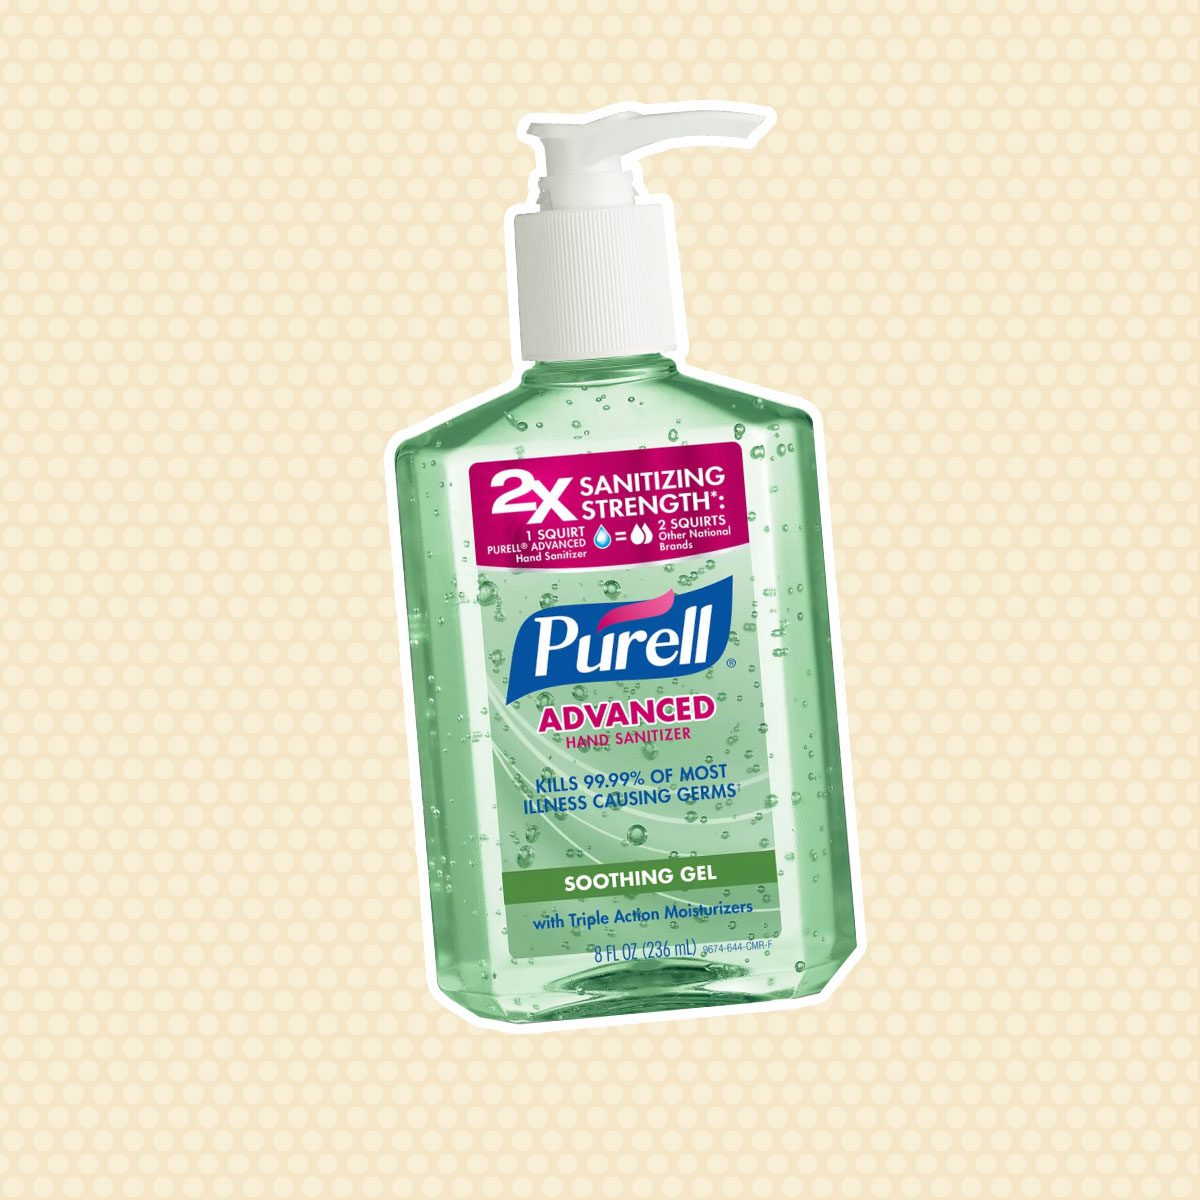 PURELL Advanced Hand Sanitizer Soothing Gel with Aloe and Vitamin E - 8 fl oz